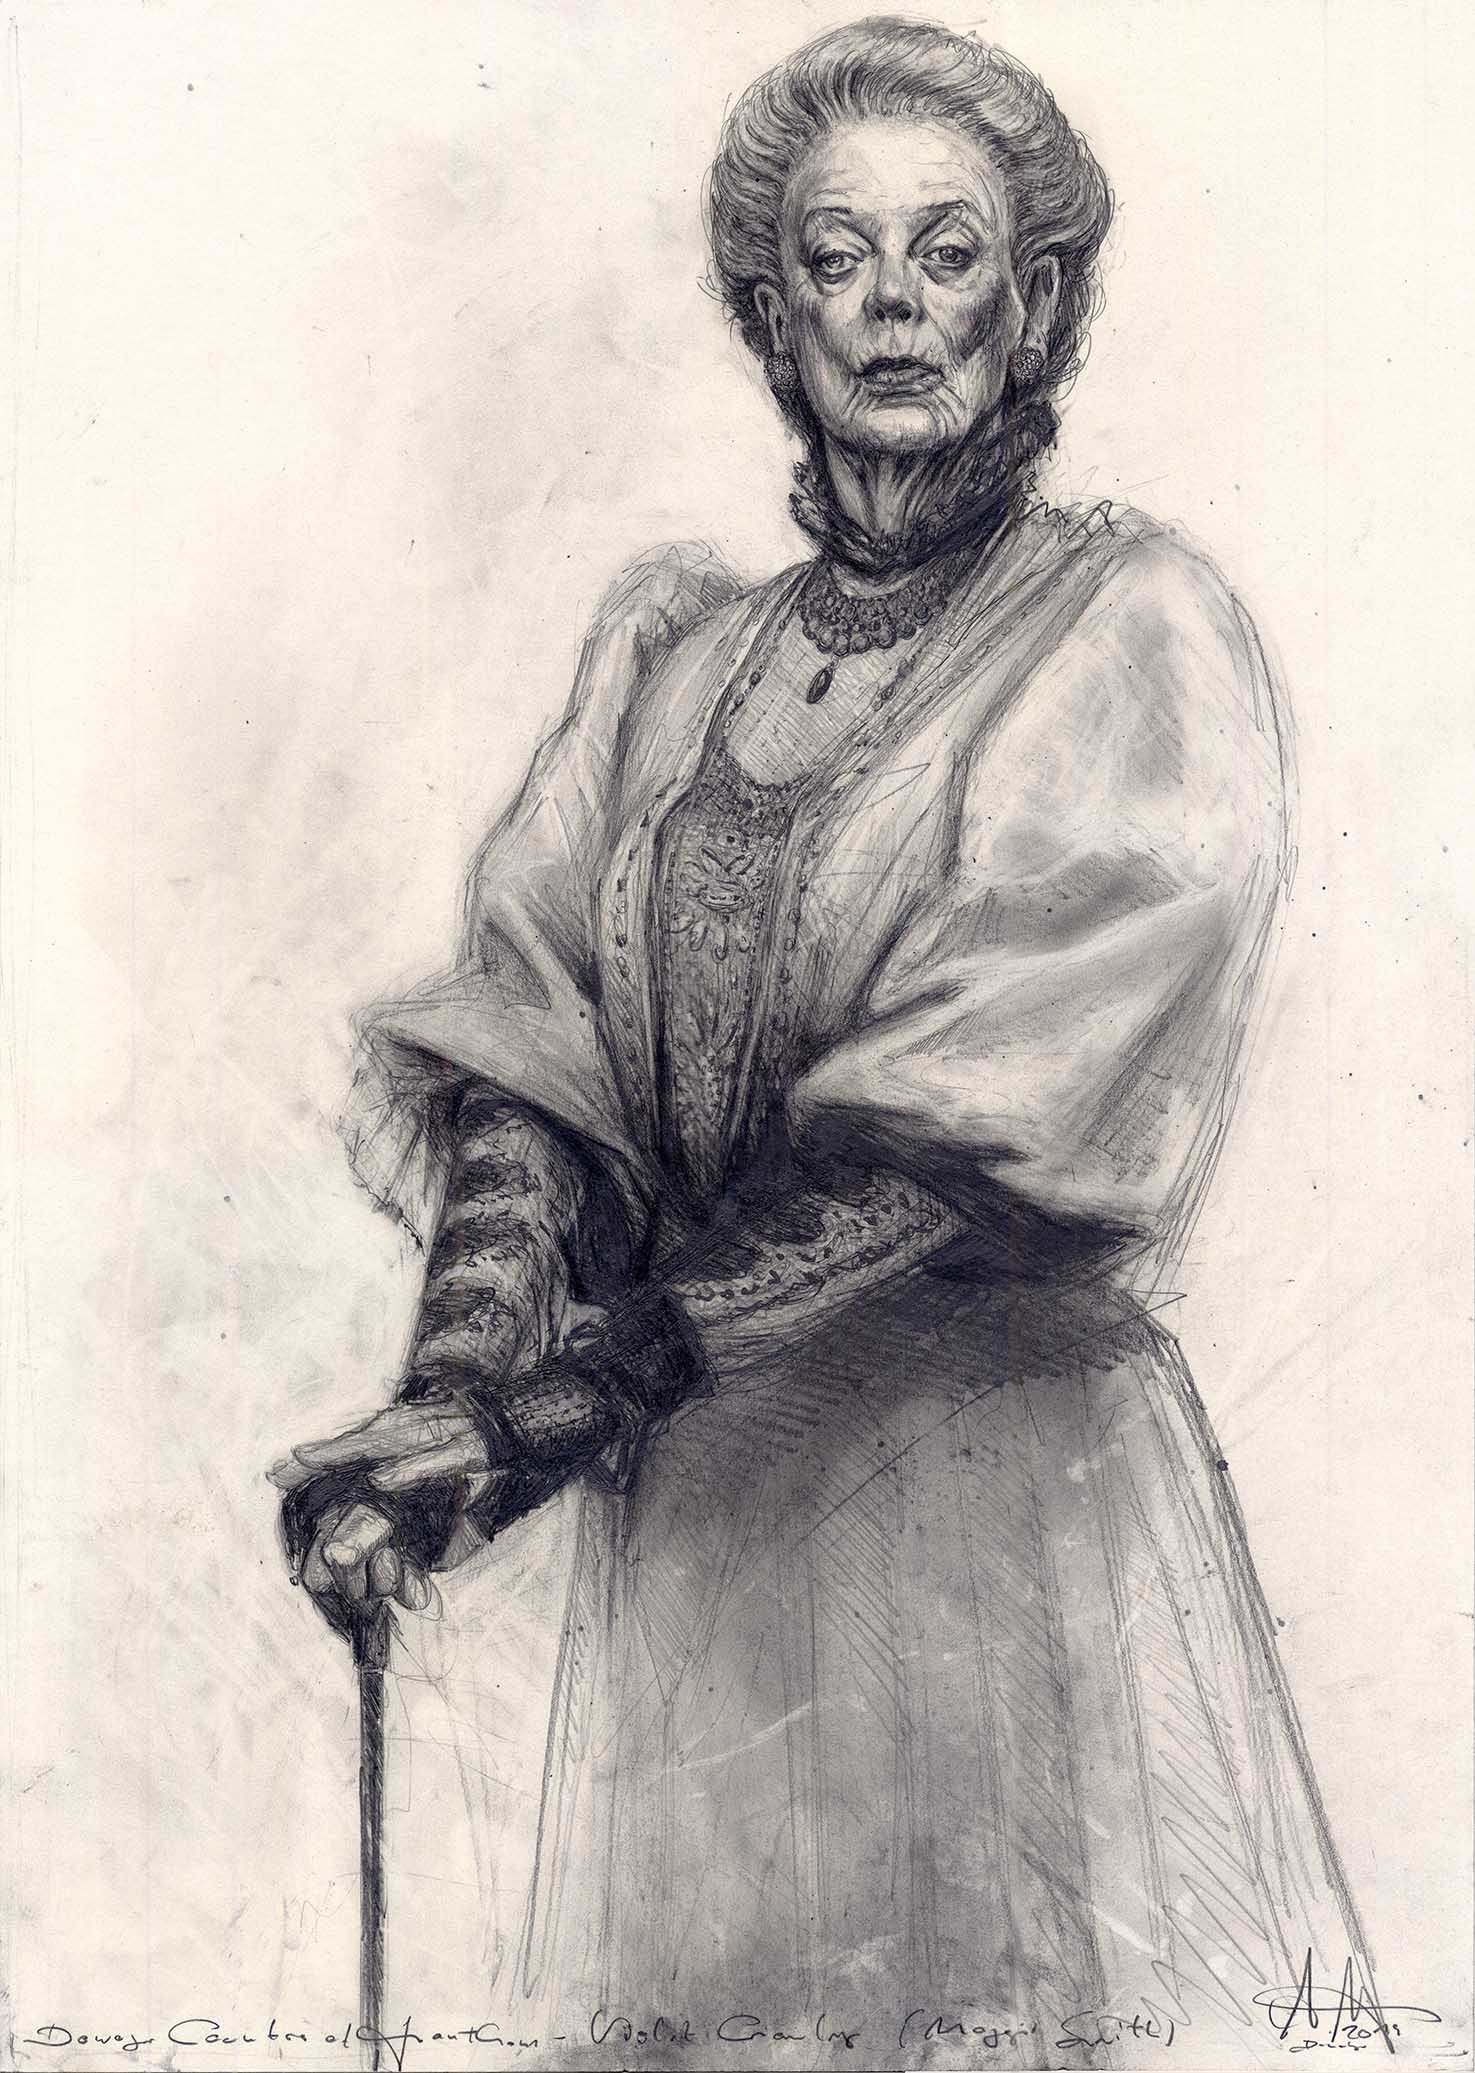 Dowager Countess of Grantham Violet Crawley (Maggie Smith)